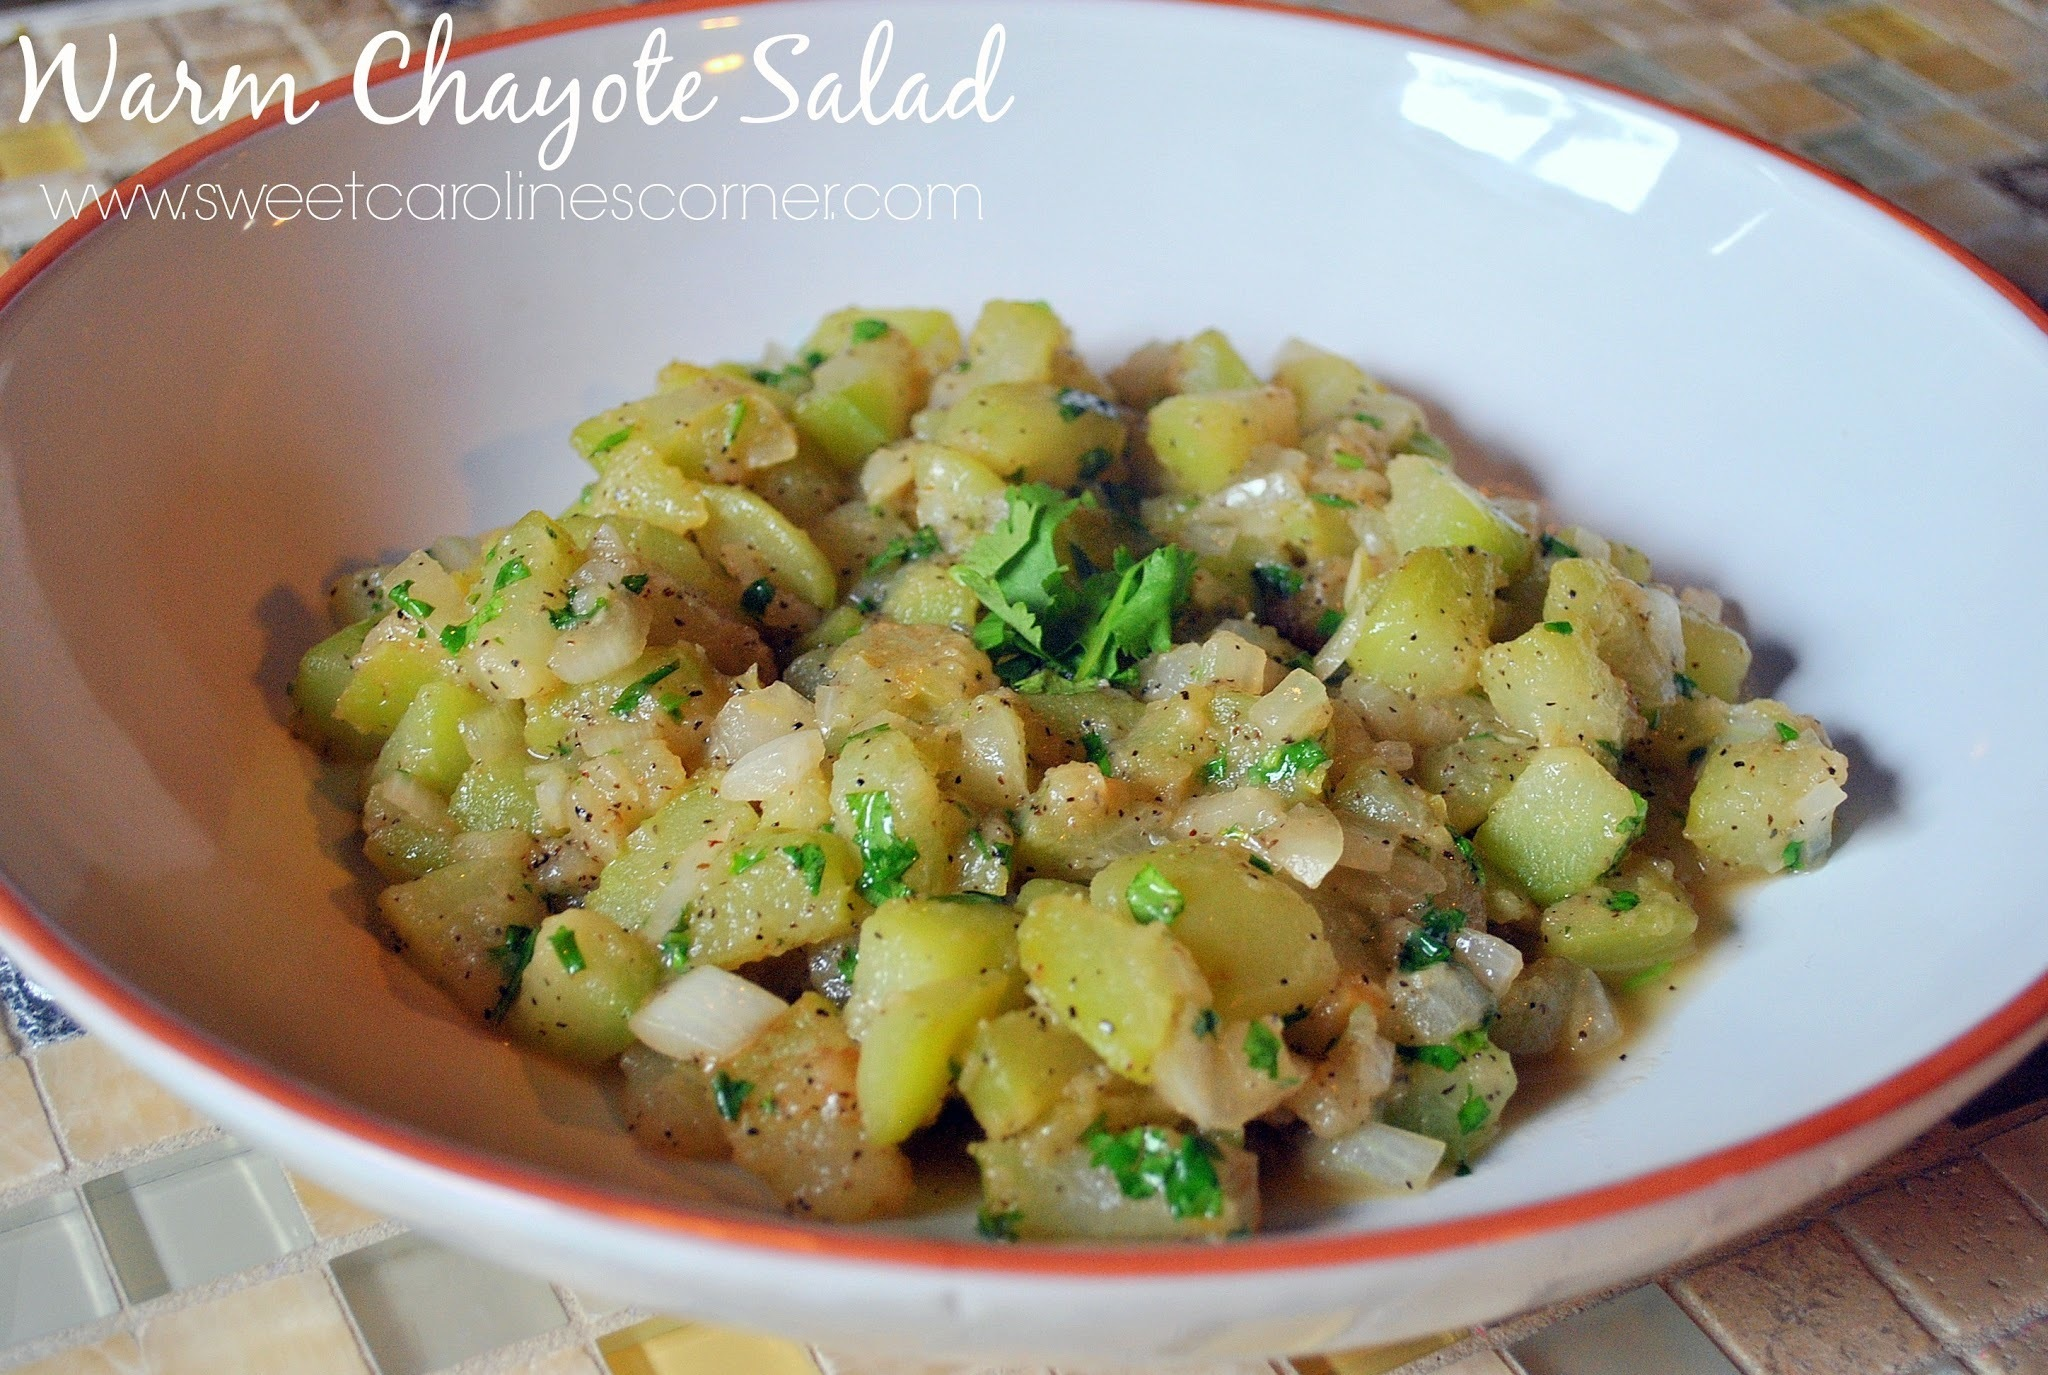 Warm Chayote Salad